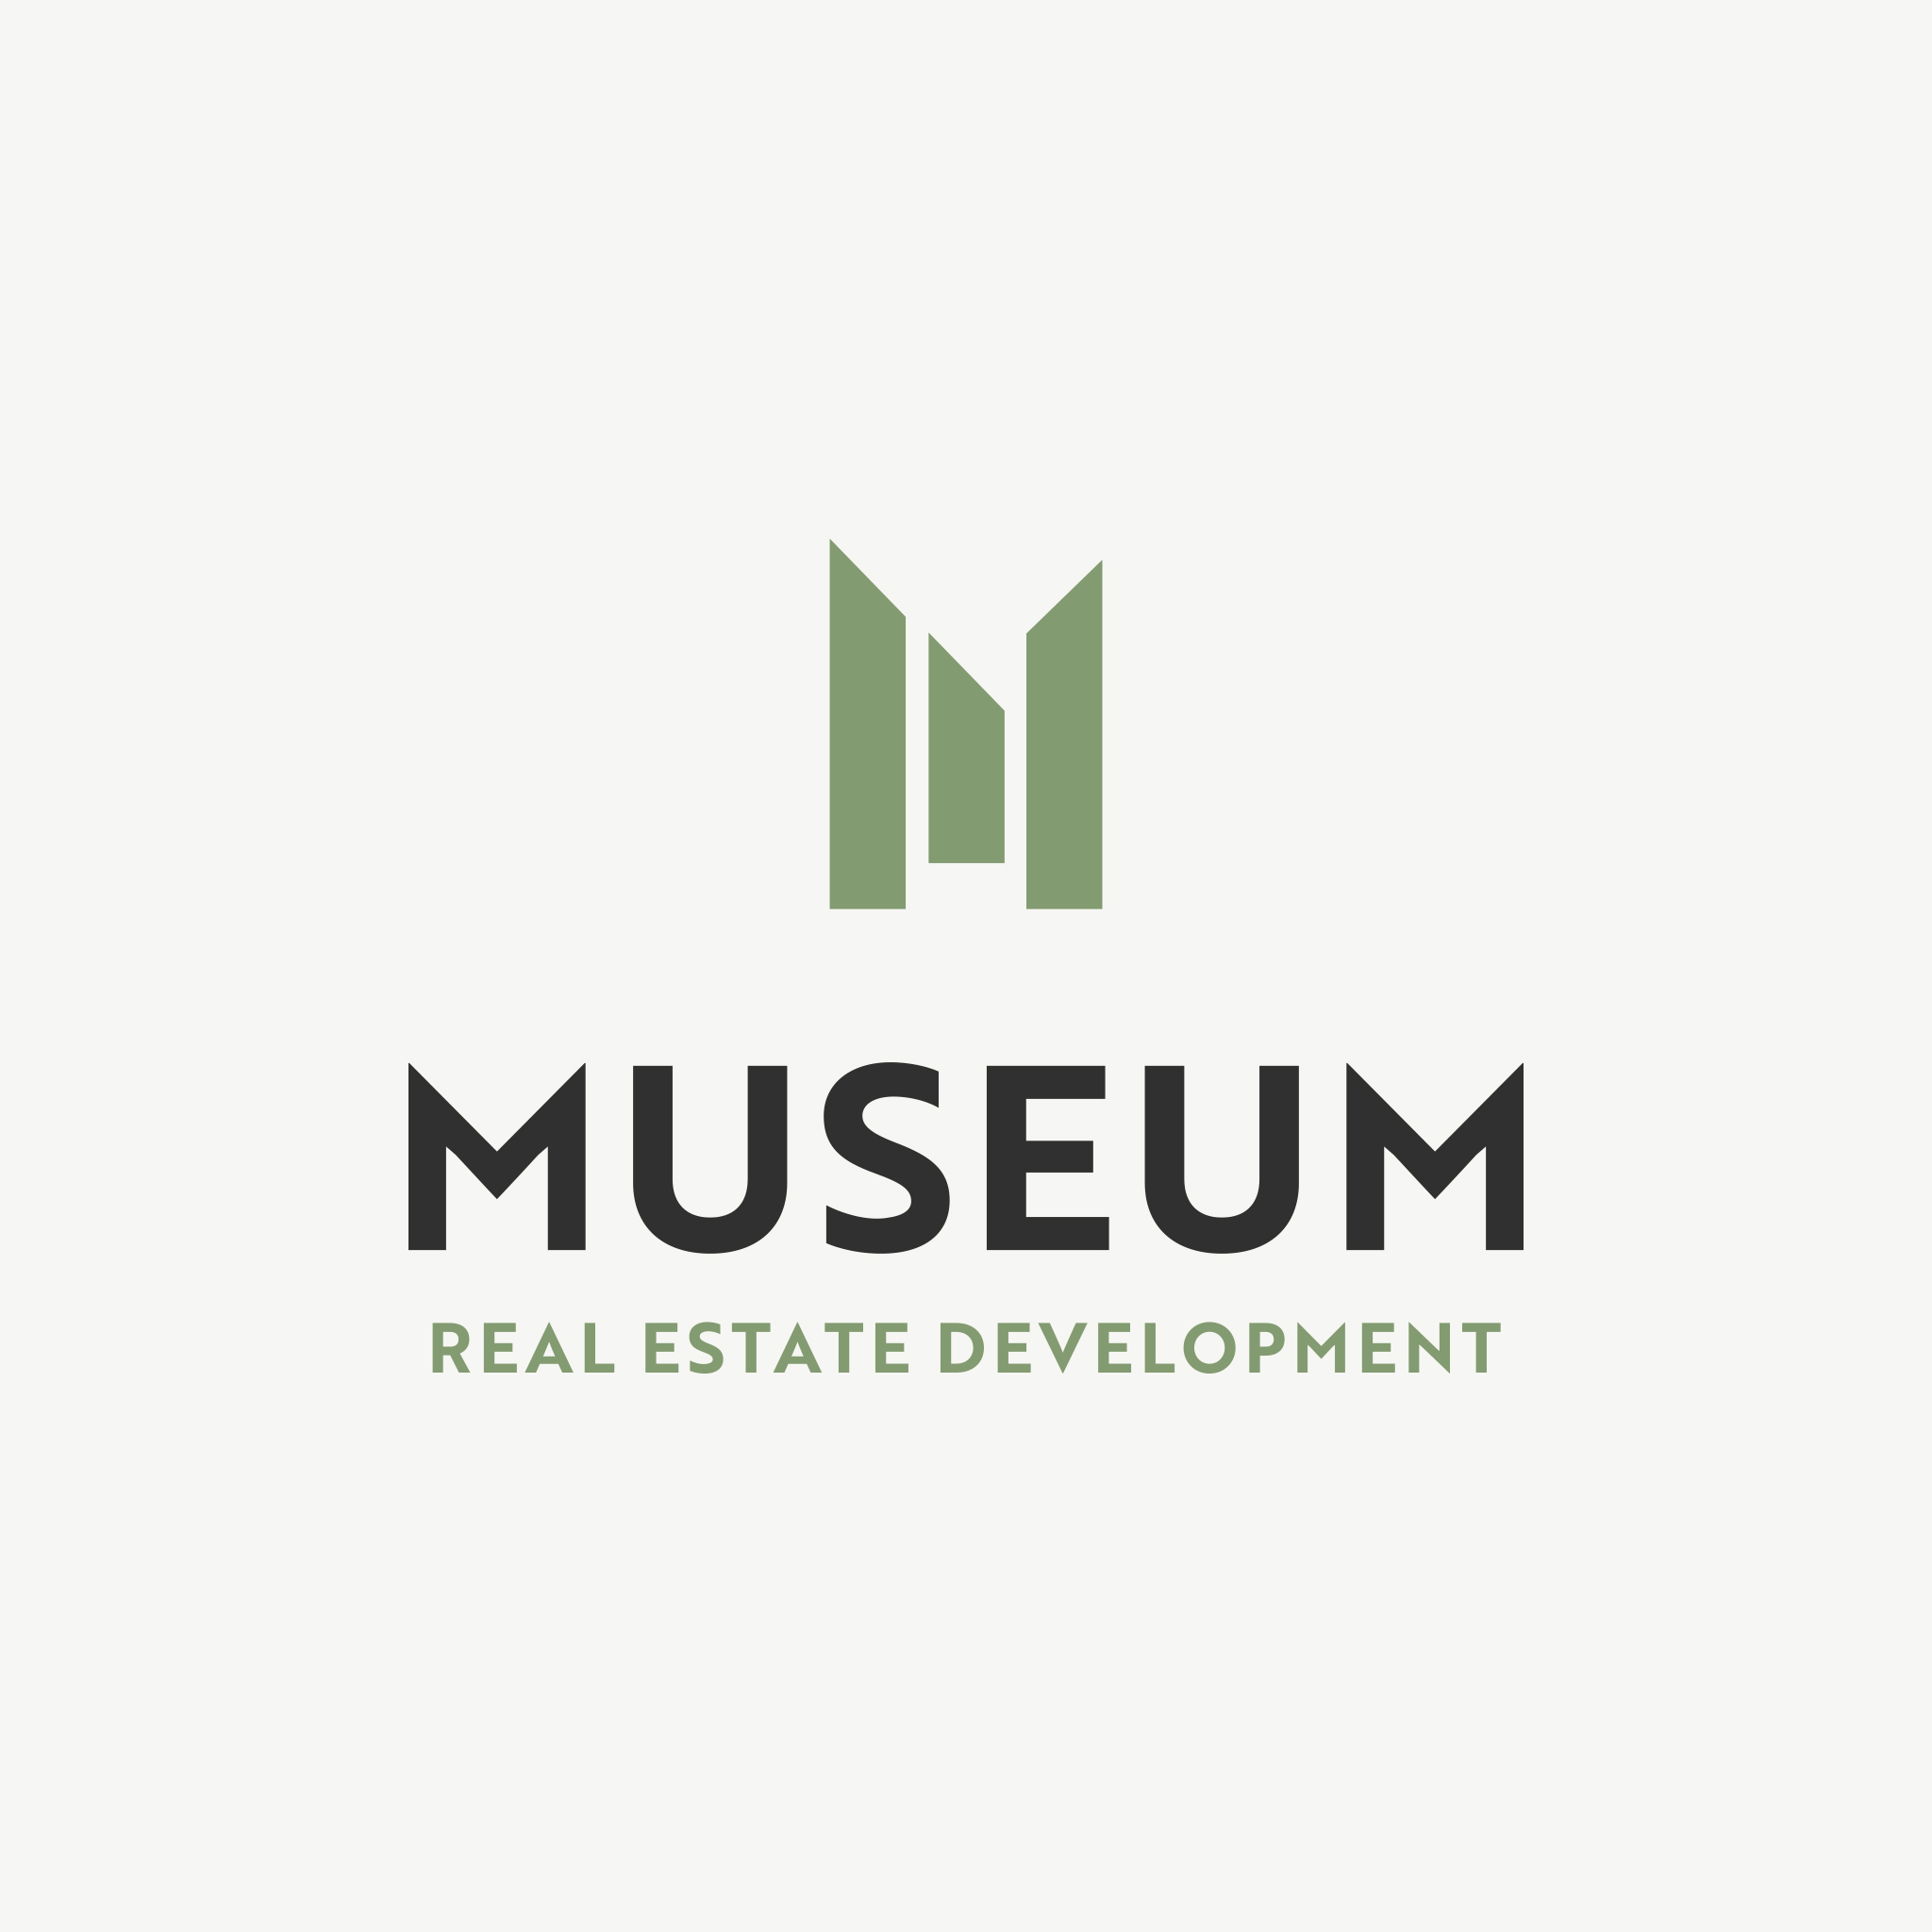 museum real estate logo